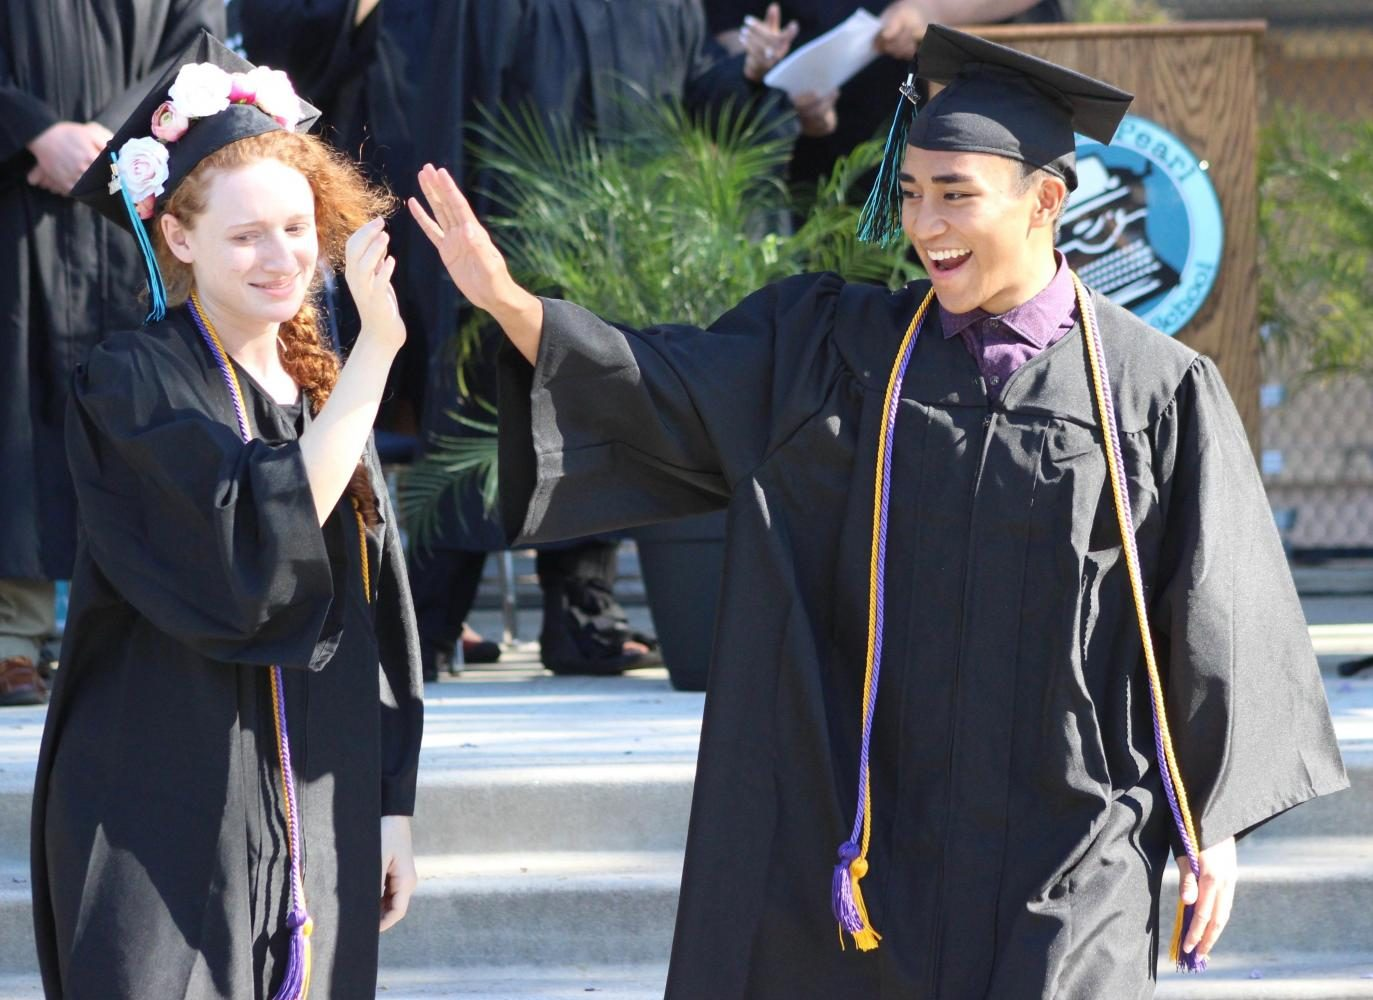 Raquel Dubin and Chester Castro congratulate each other after walking across the stage during the commencement ceremony.